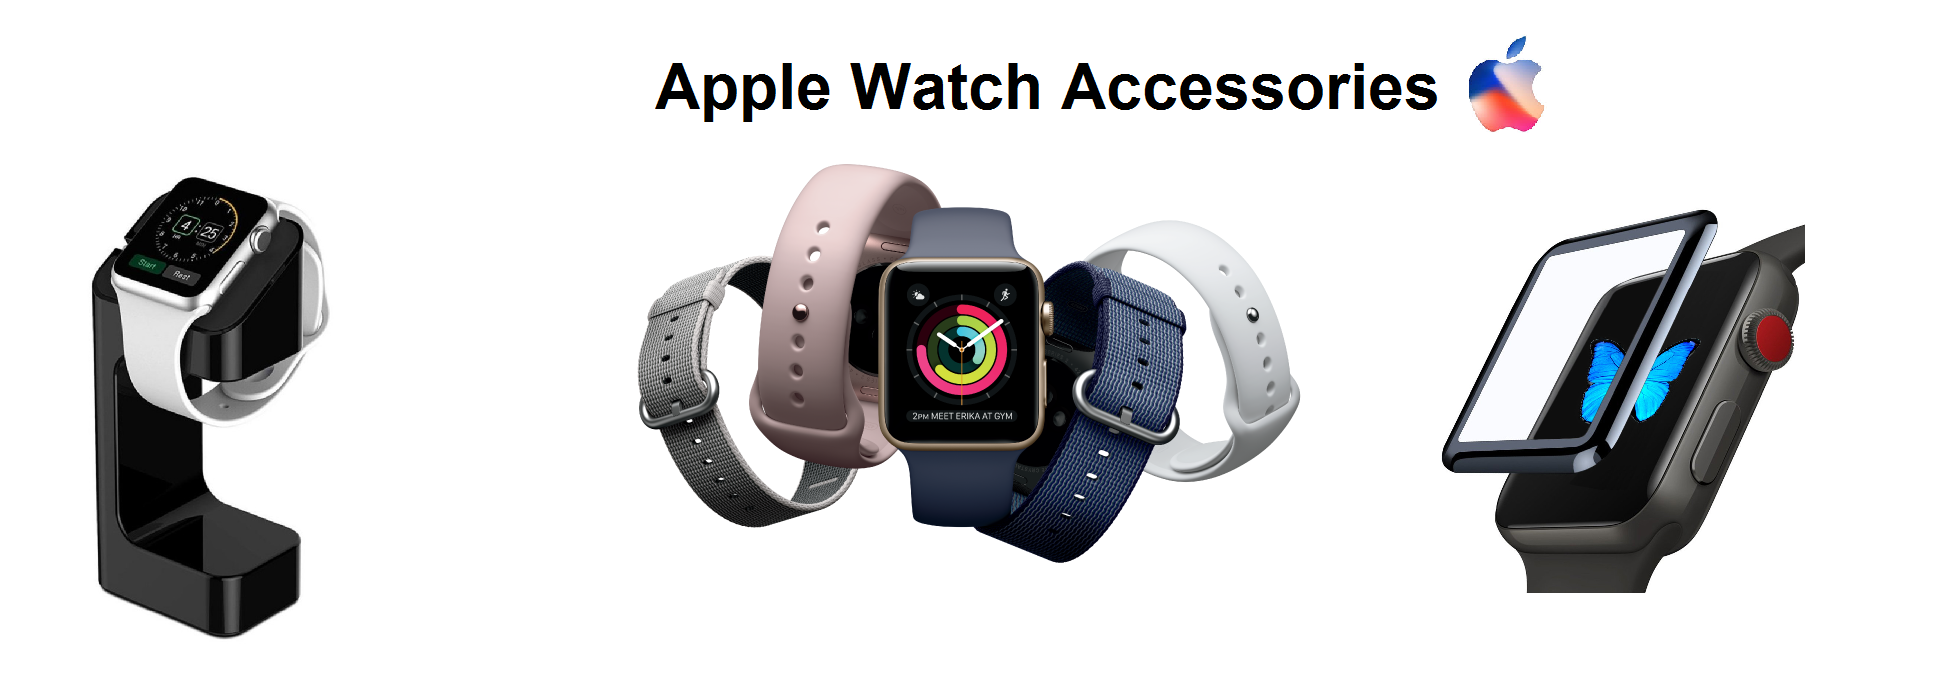 apple-watch-accessories-banner.png